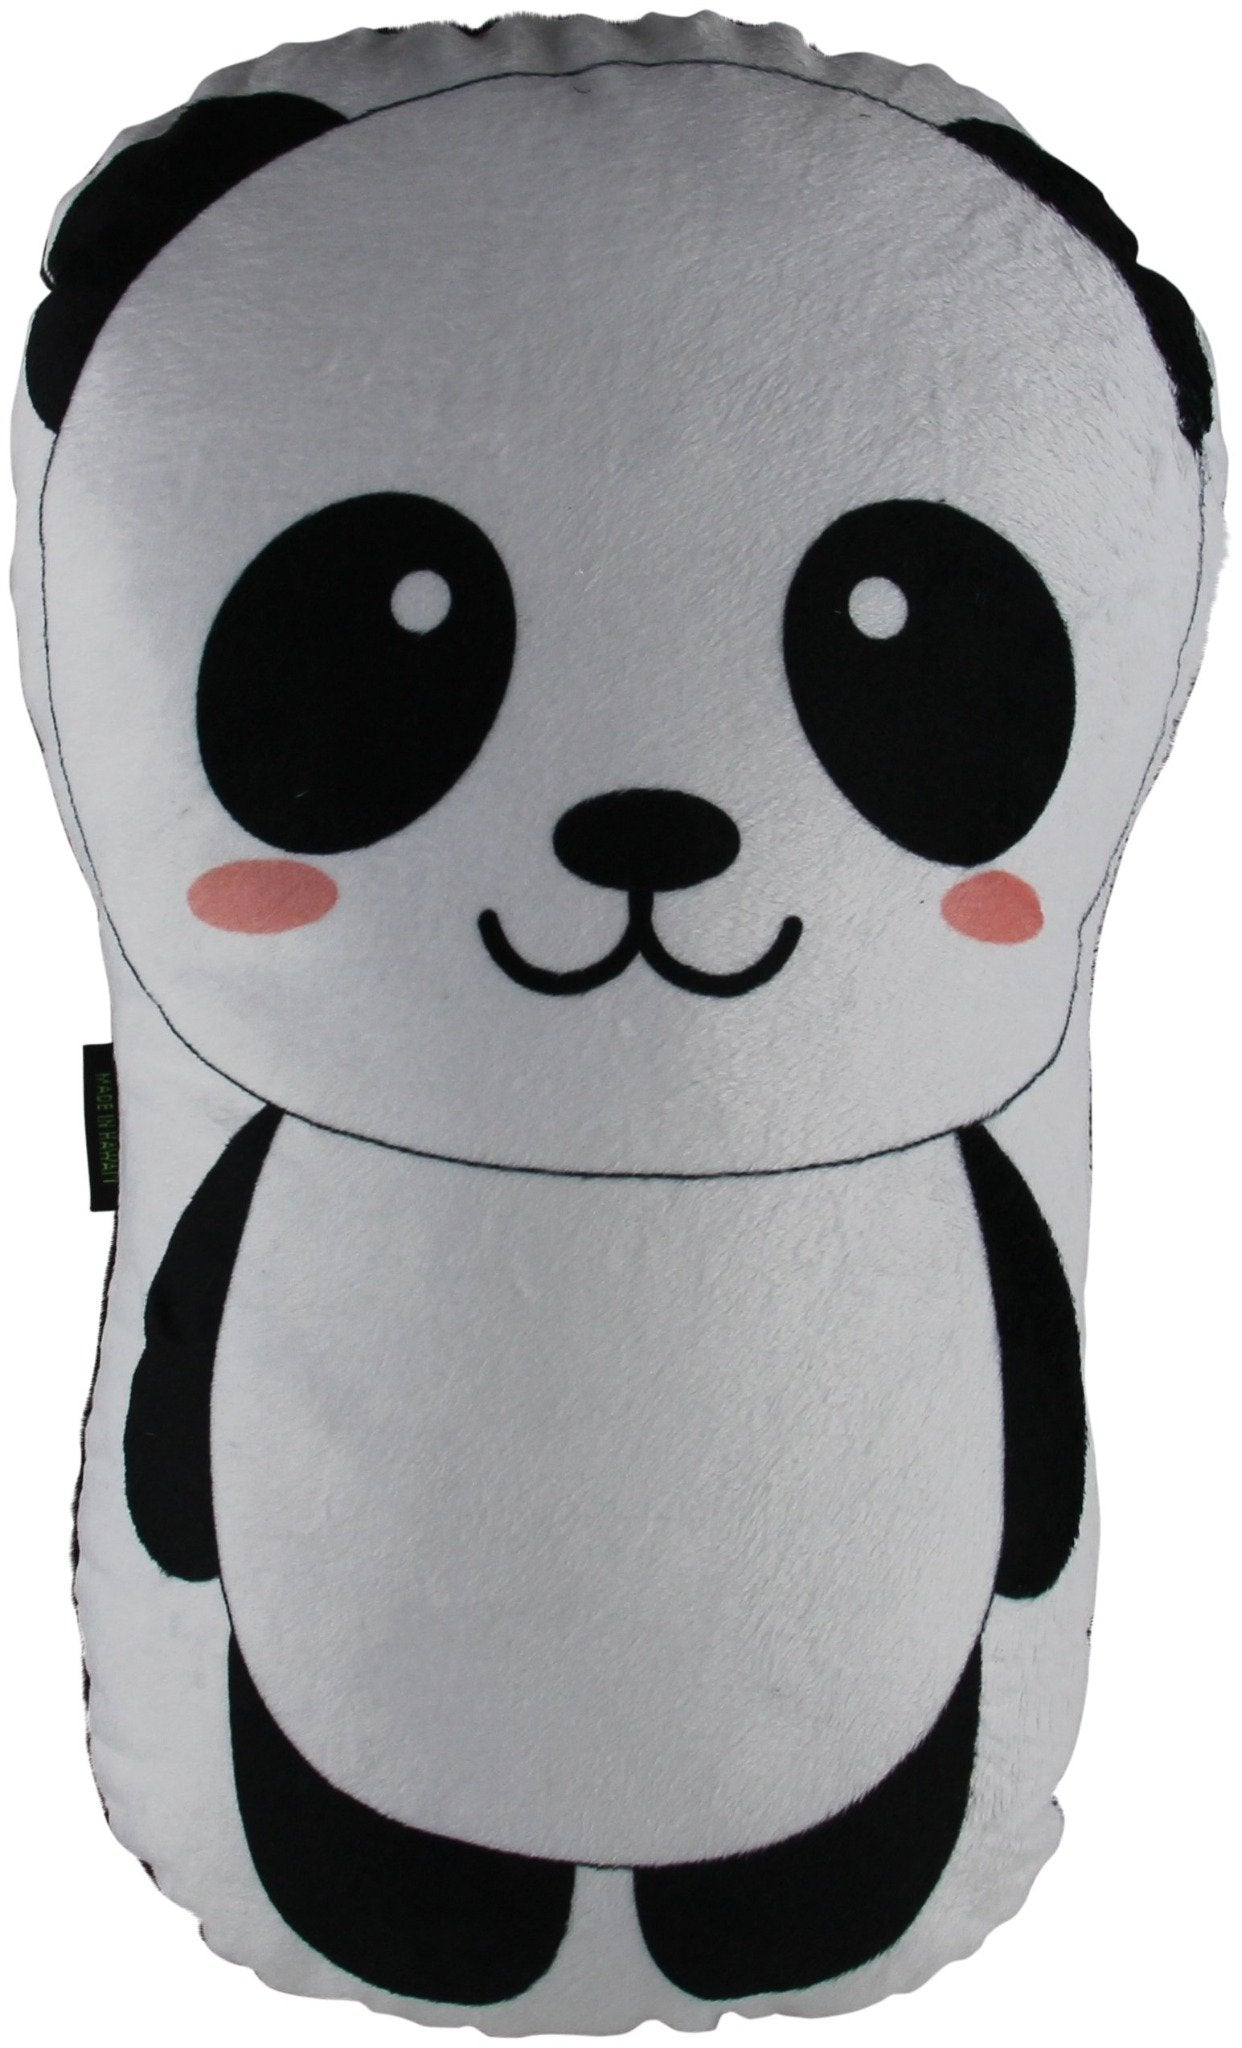 Plush pillow-Kawaii Panda